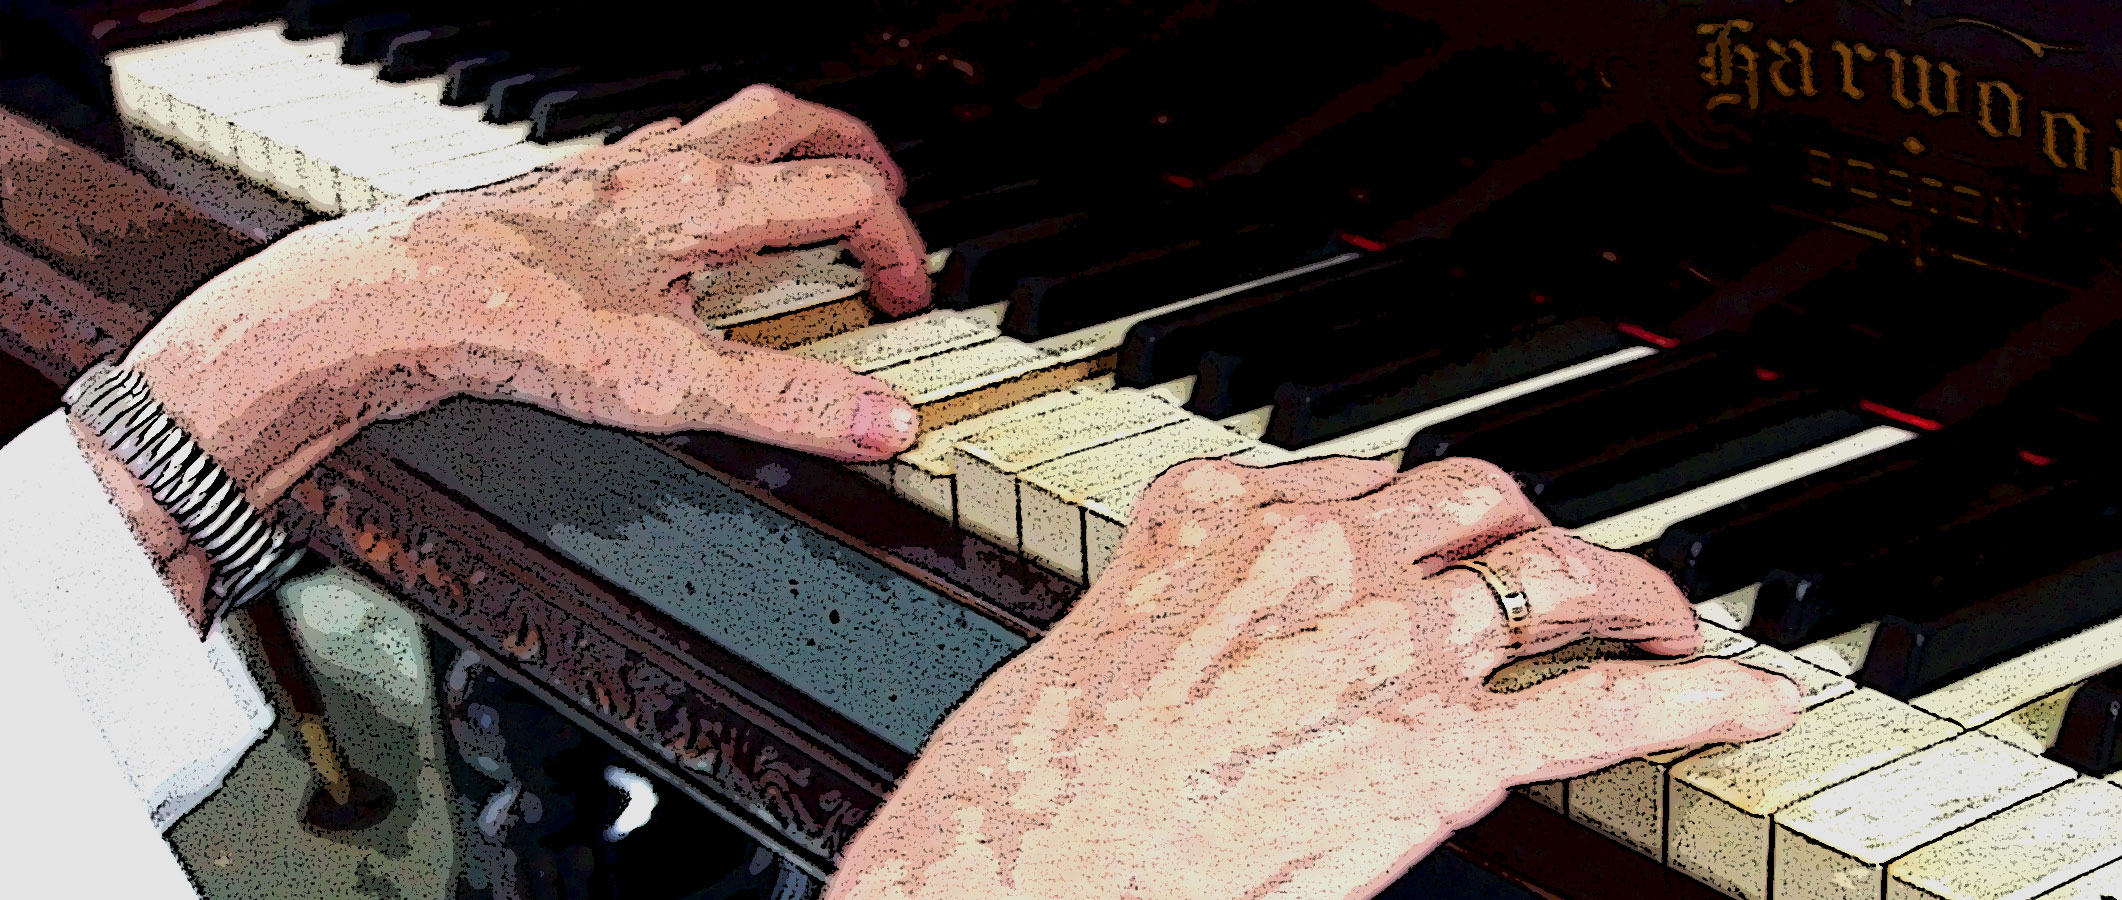 Illustration de mains sur le clavier d'un piano